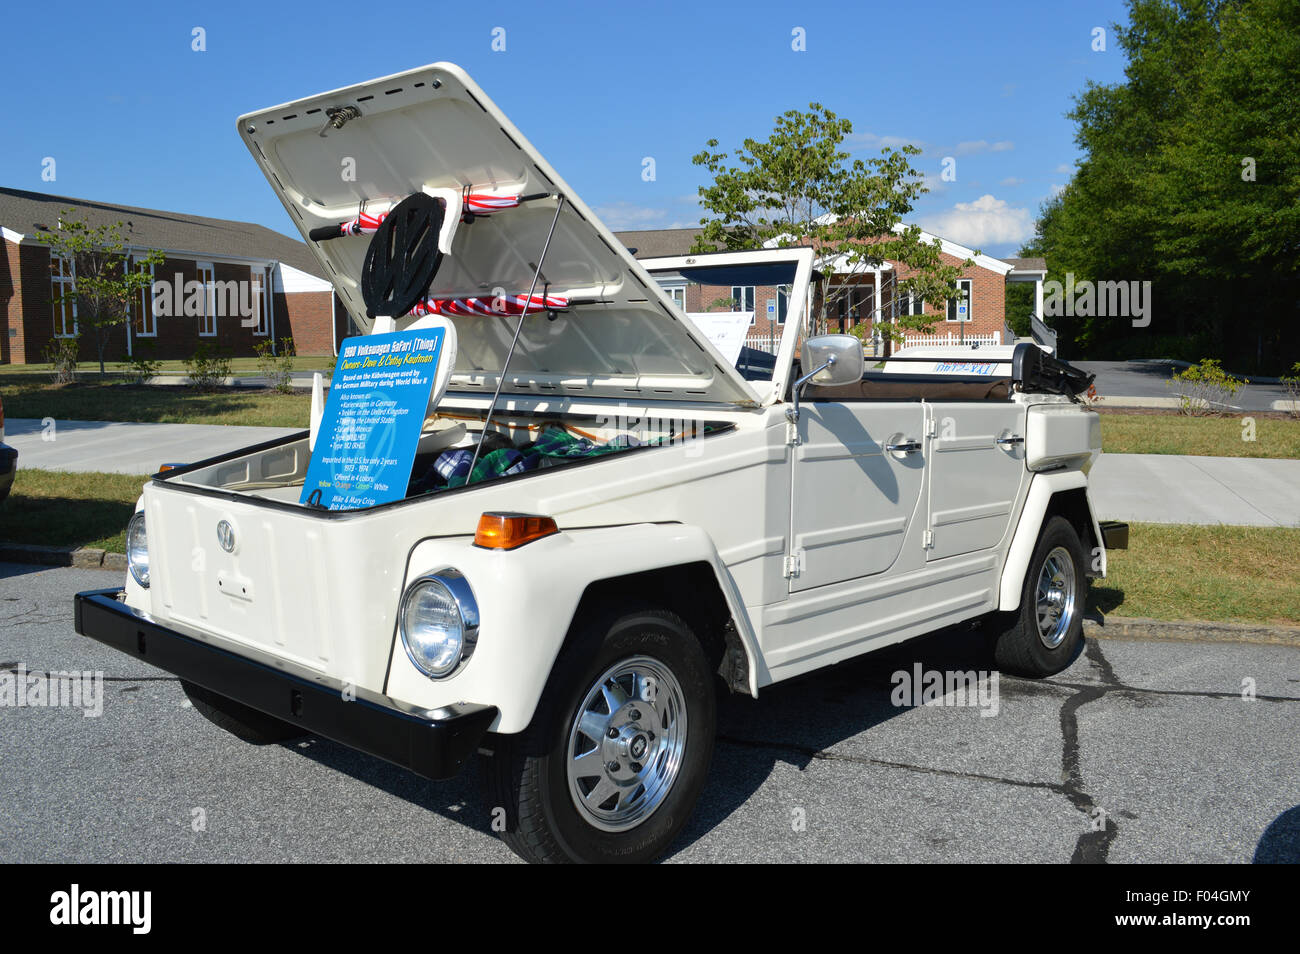 A vintage Volkswagen Thing Car. - Stock Image